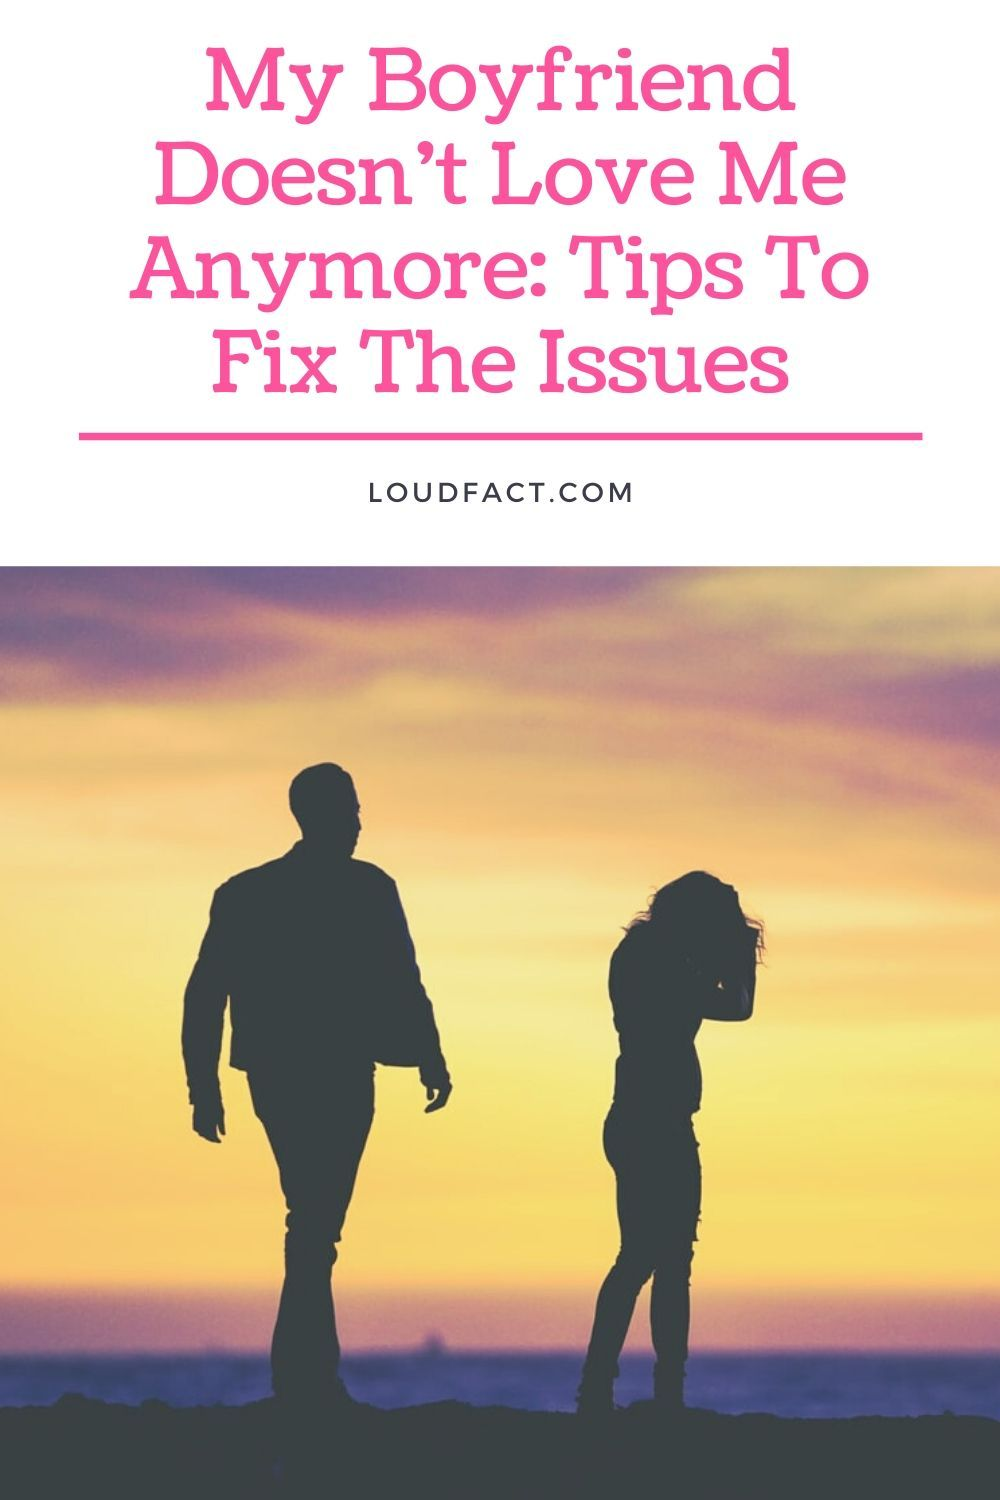 My Boyfriend Doesnt Love Me Anymore: Tips To Fix The